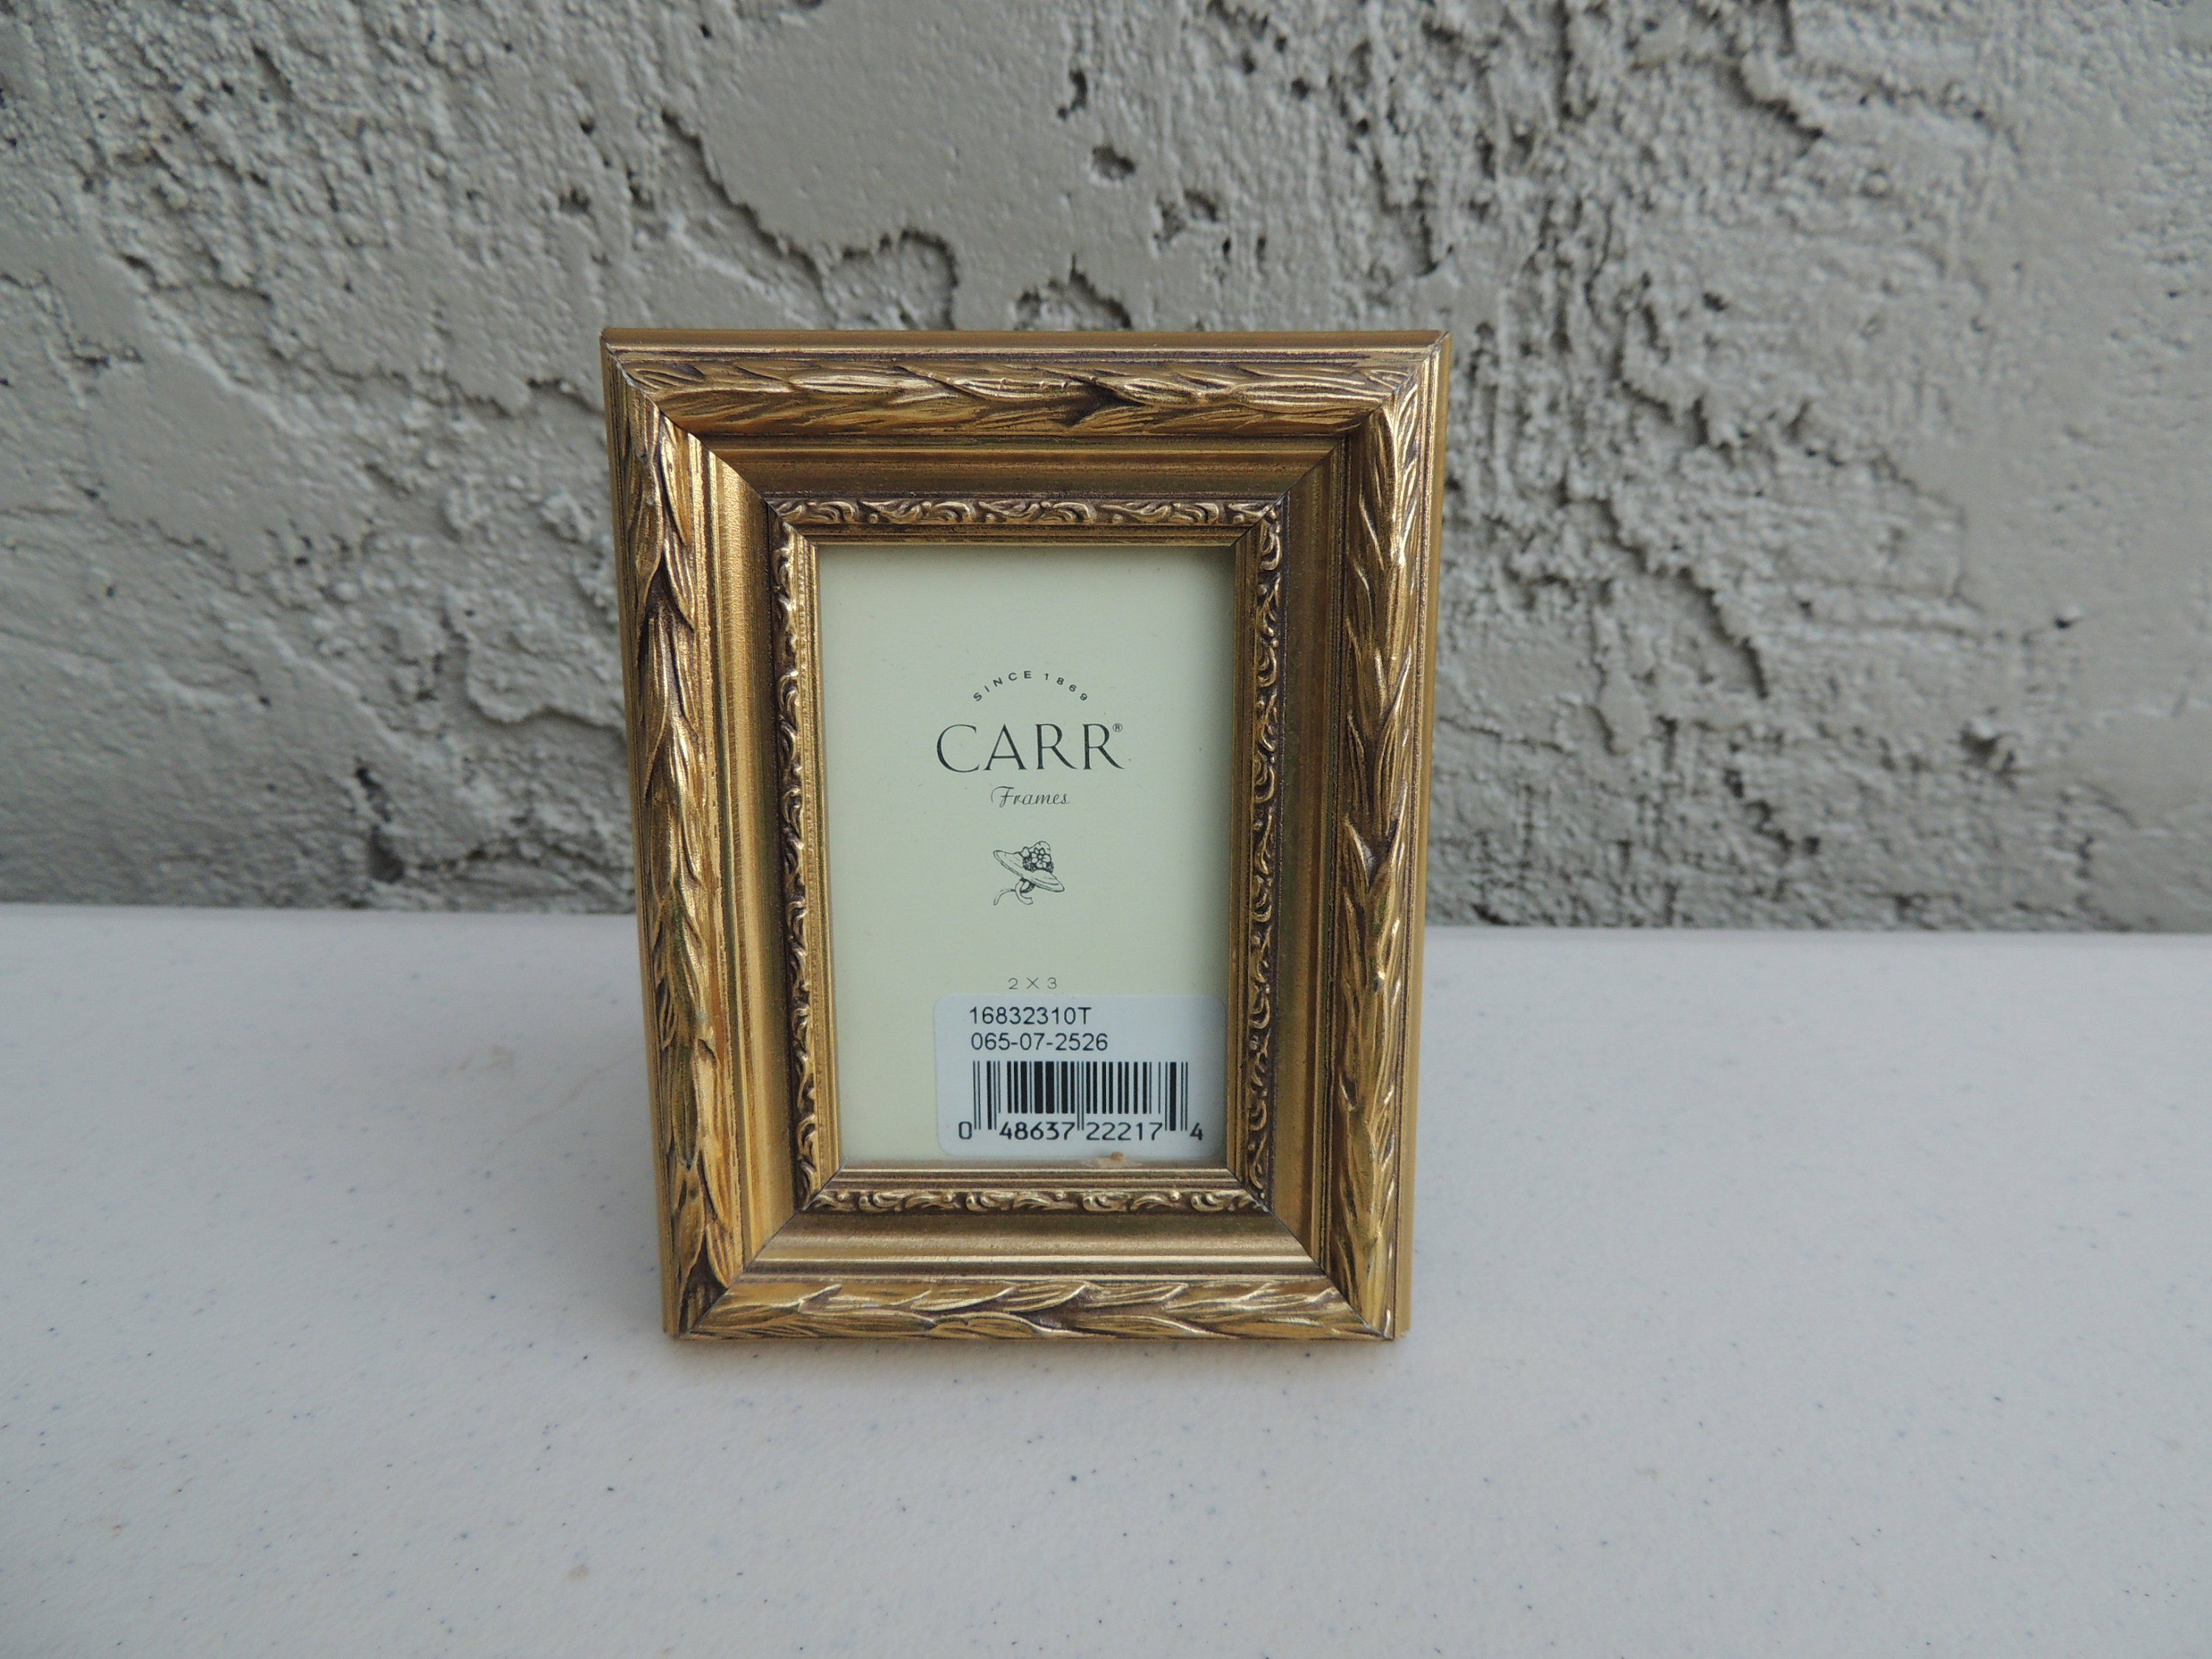 Vintage Carr 2x3 Picture Frame Decorative Gold Tone Picture Frames Frame Photo Picture Frames